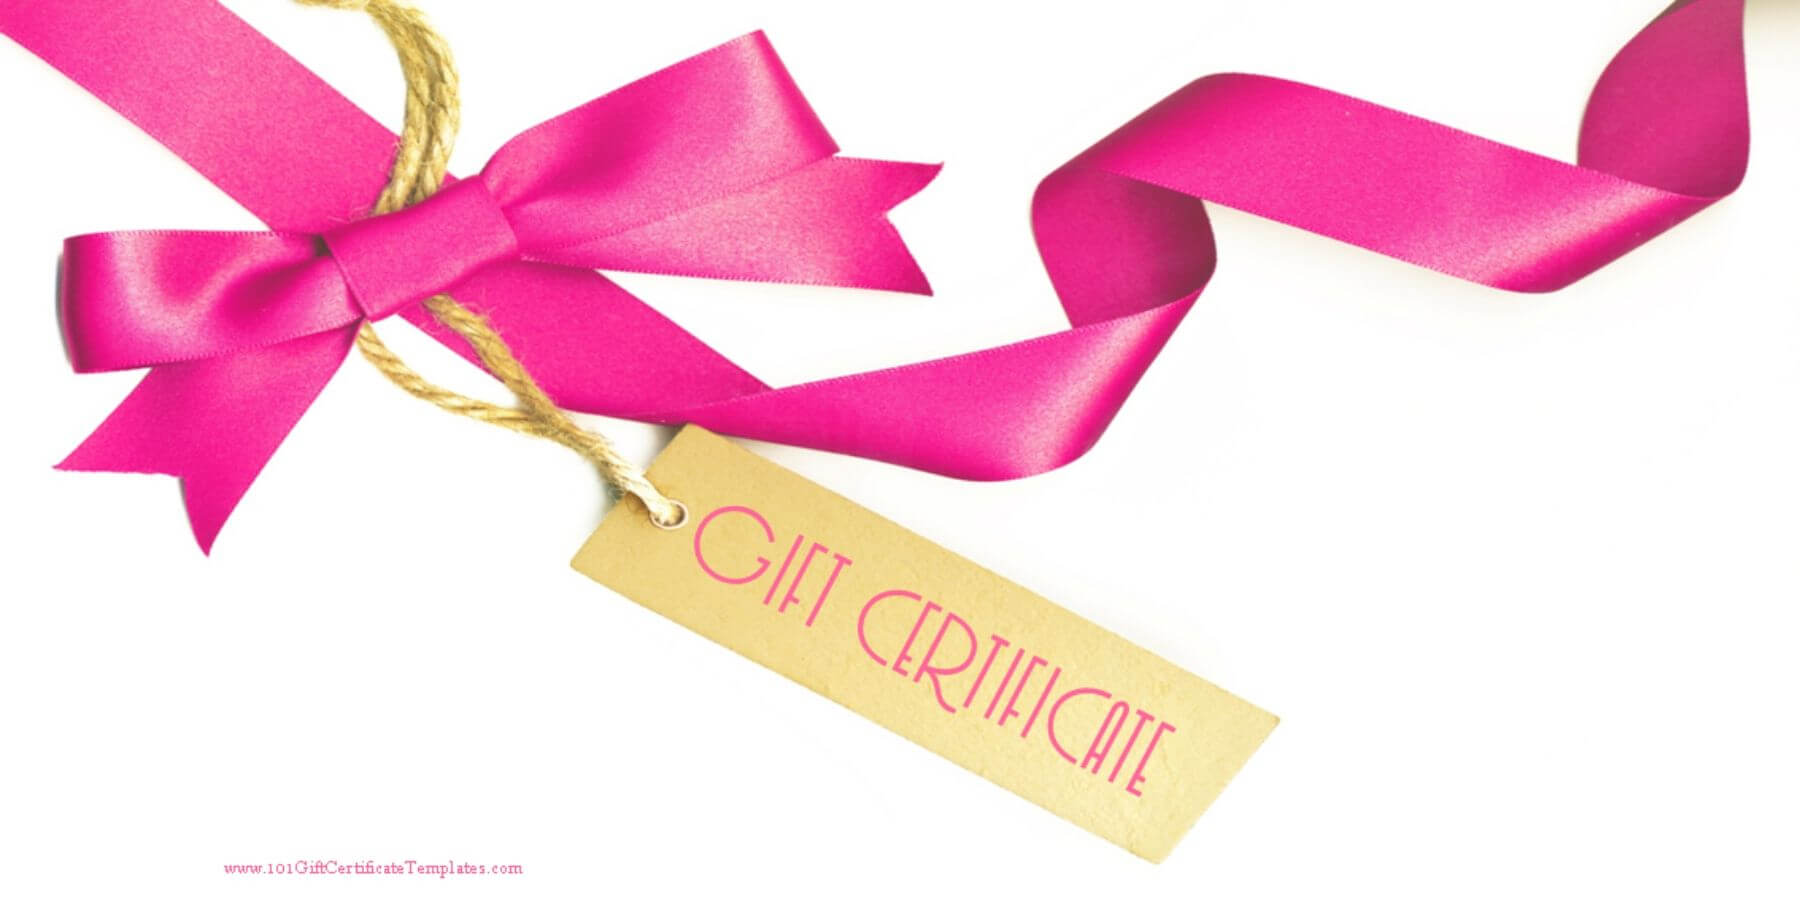 Gift Certificate With A White Background And A Pink Ribbon With Regard To Pink Gift Certificate Template